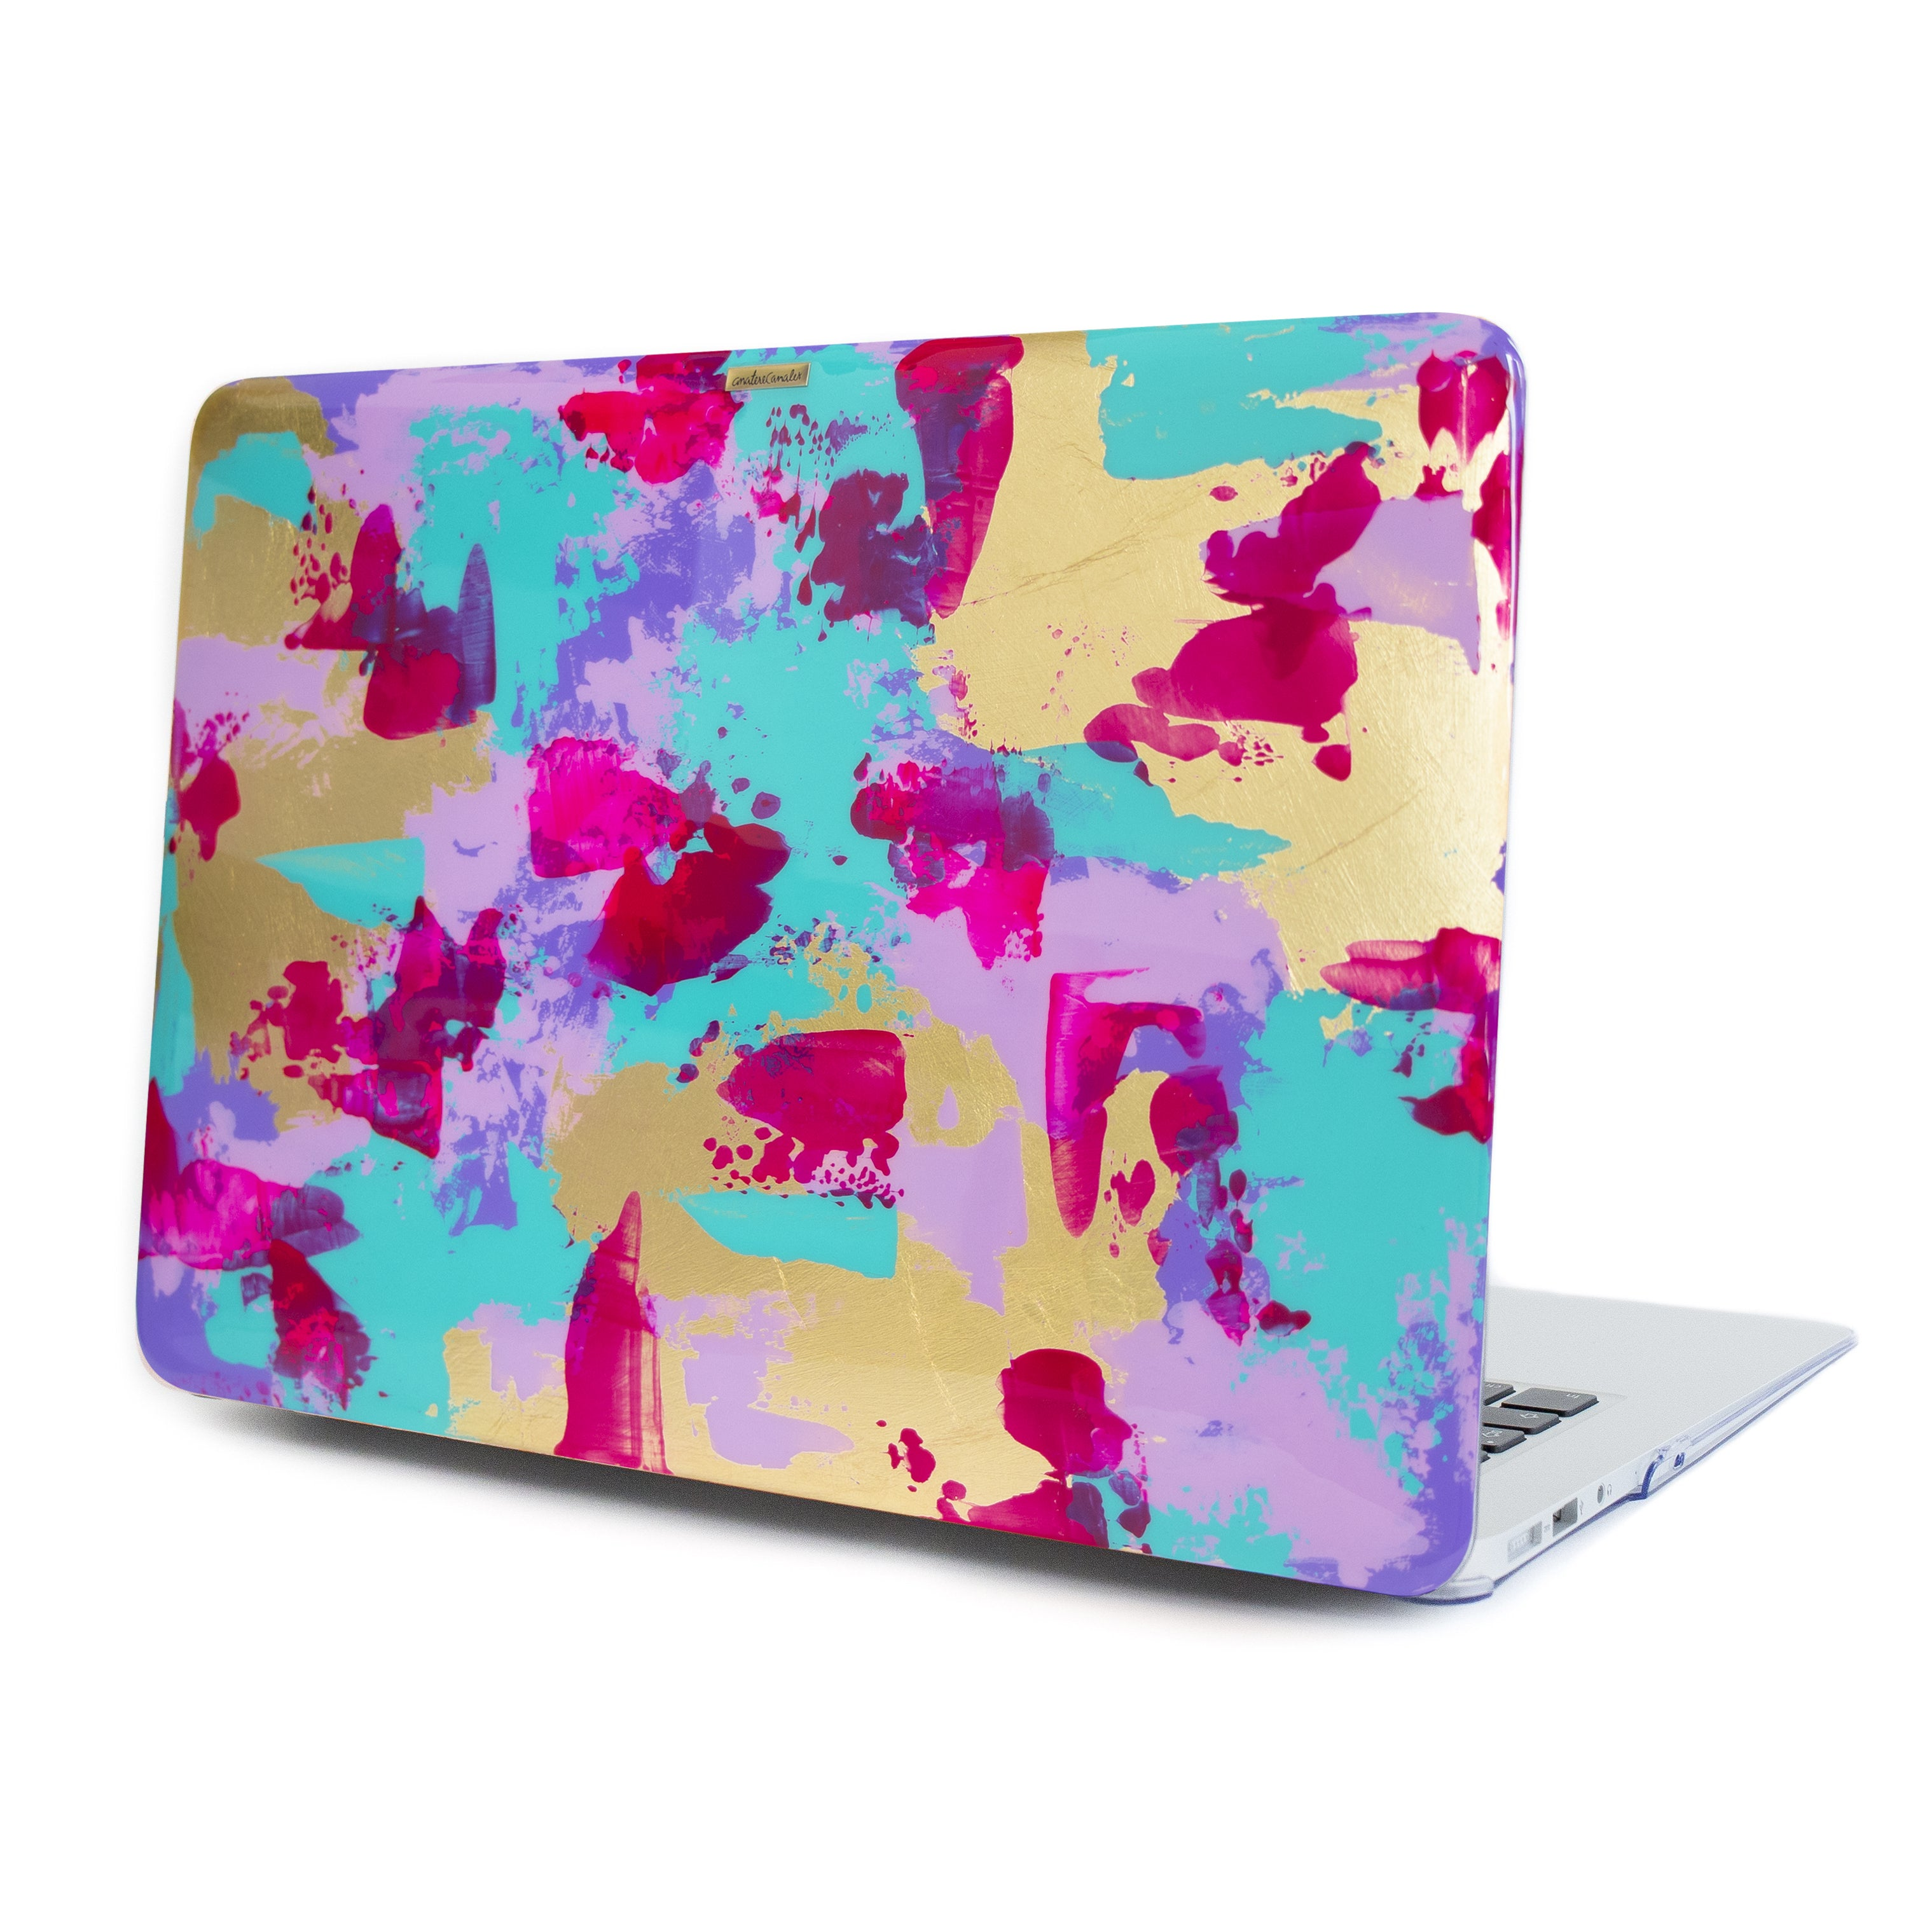 Lilac Opal Macbook - Ana Tere Canales